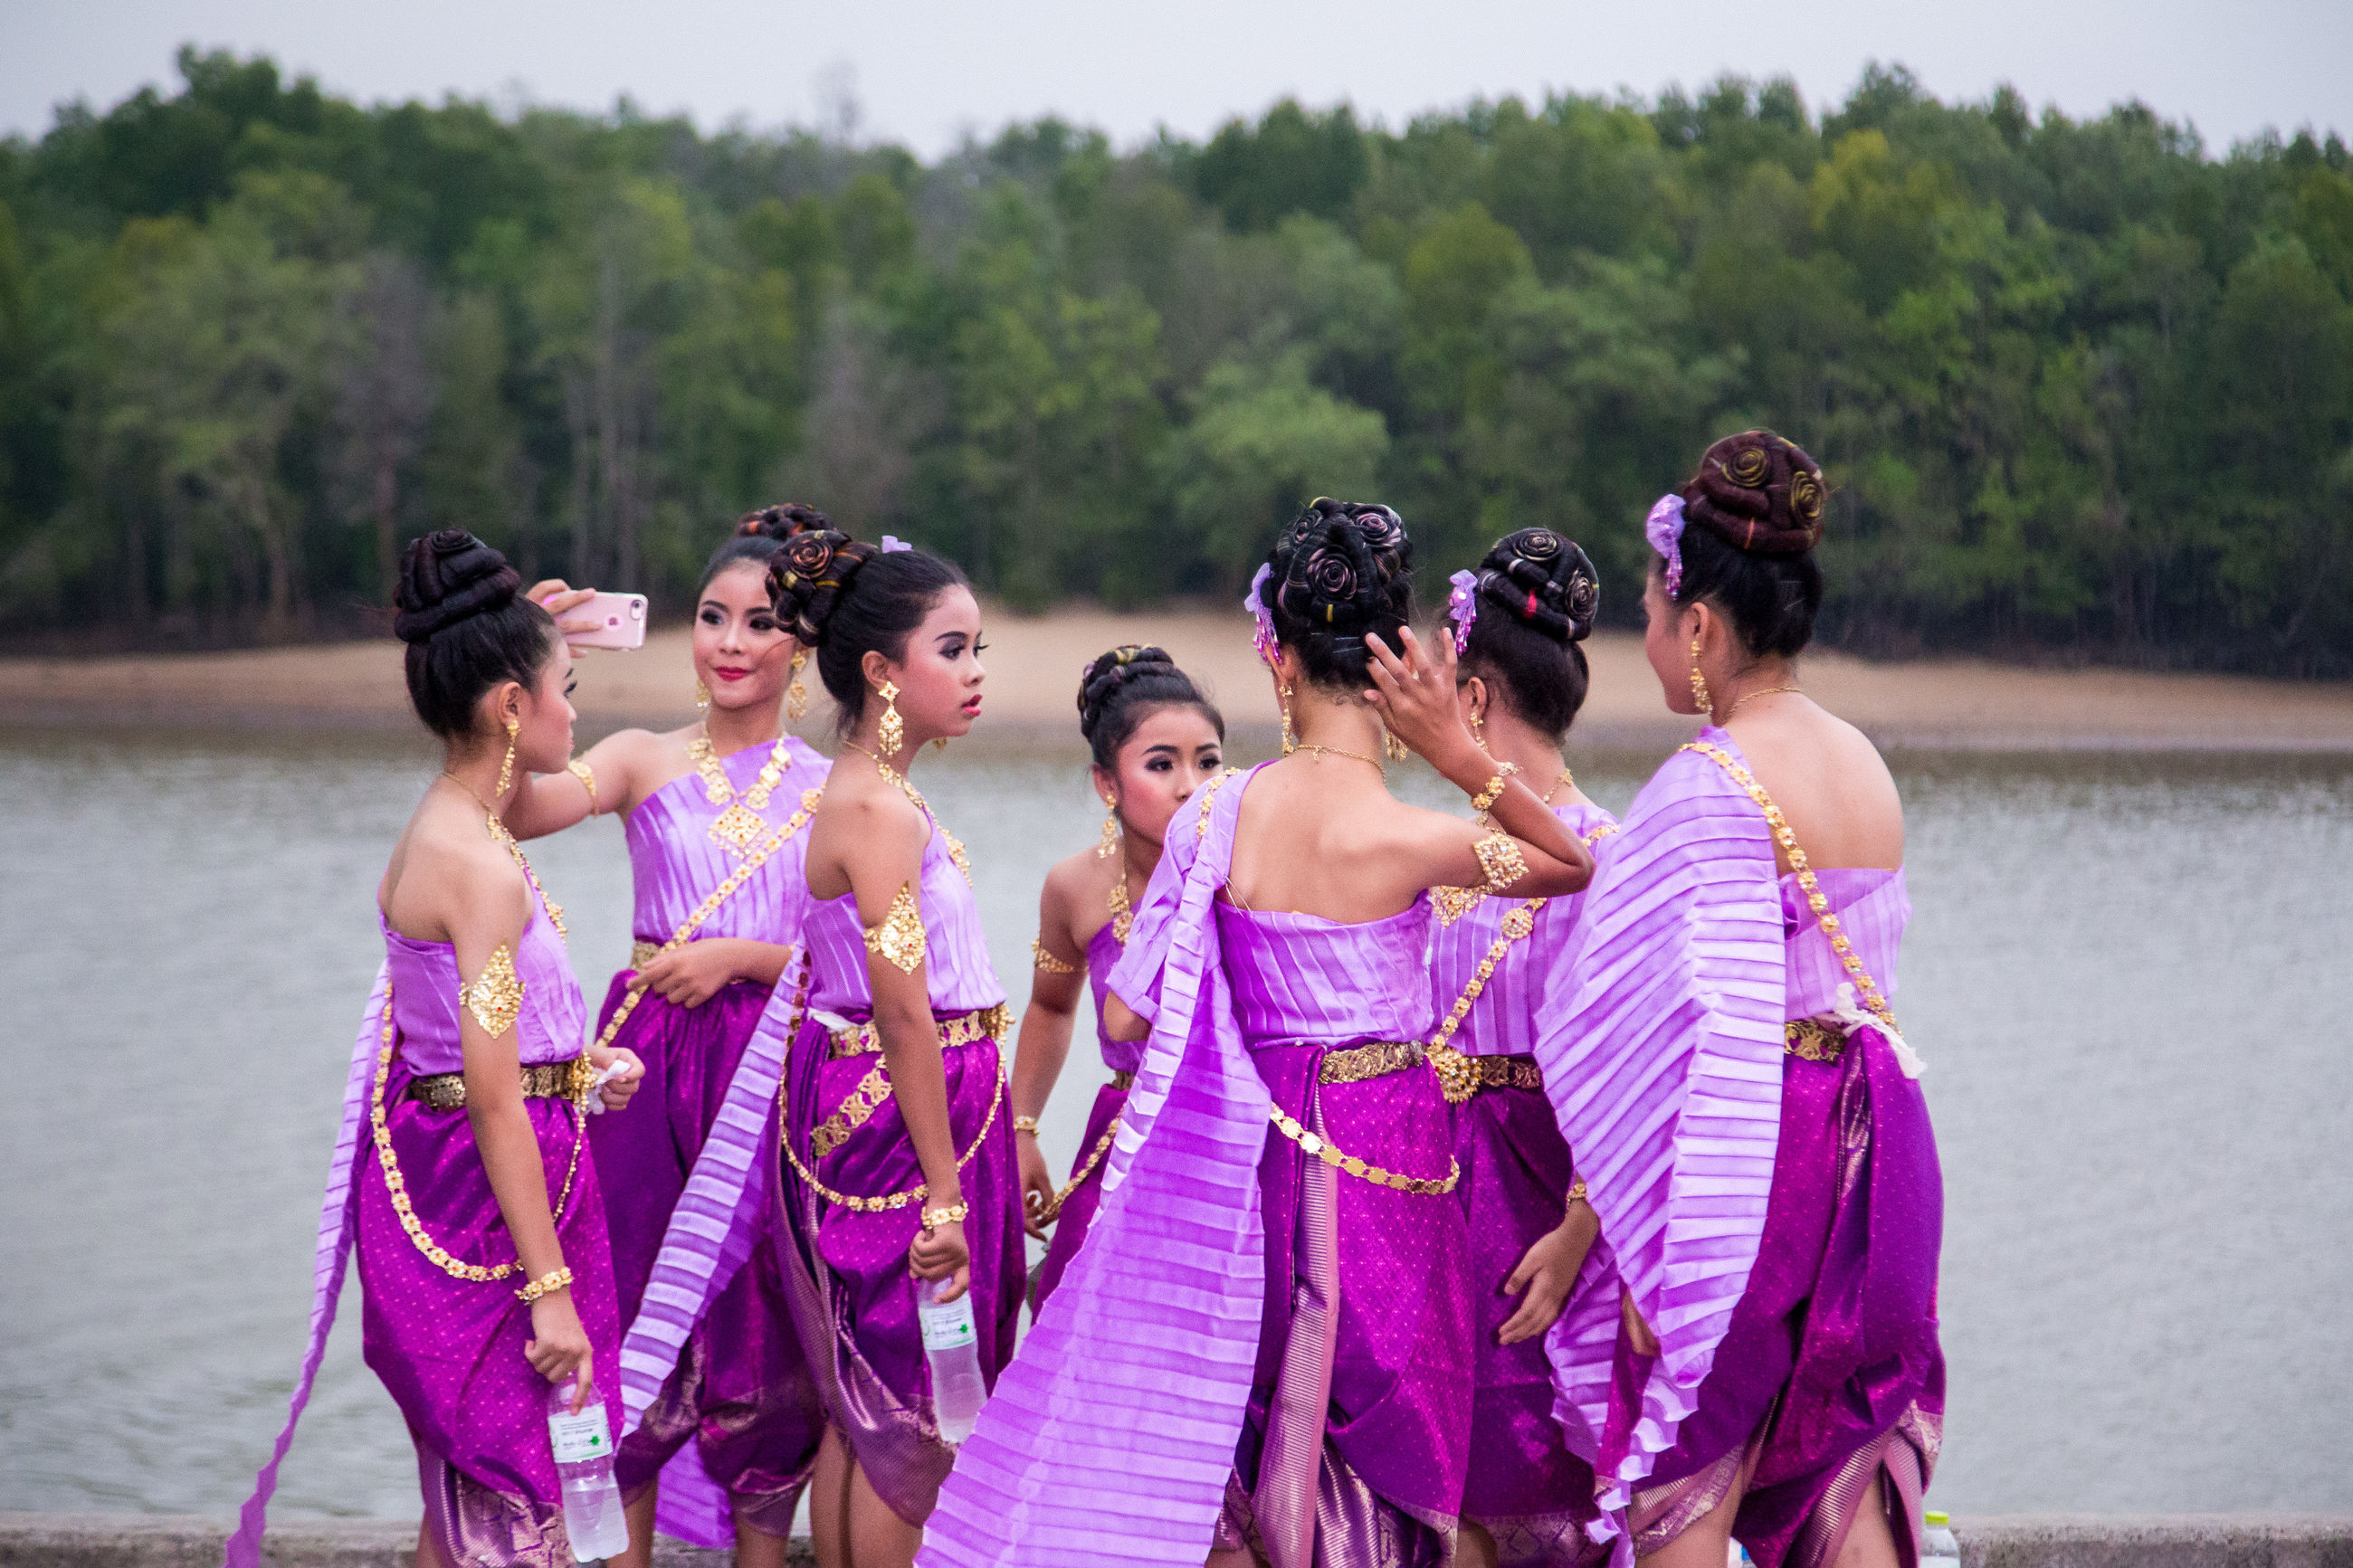 water, women, real people, group of people, togetherness, three quarter length, adult, standing, nature, pink color, traditional clothing, people, day, lifestyles, clothing, event, celebration, holding, leisure activity, outdoors, purple, positive emotion, couple - relationship